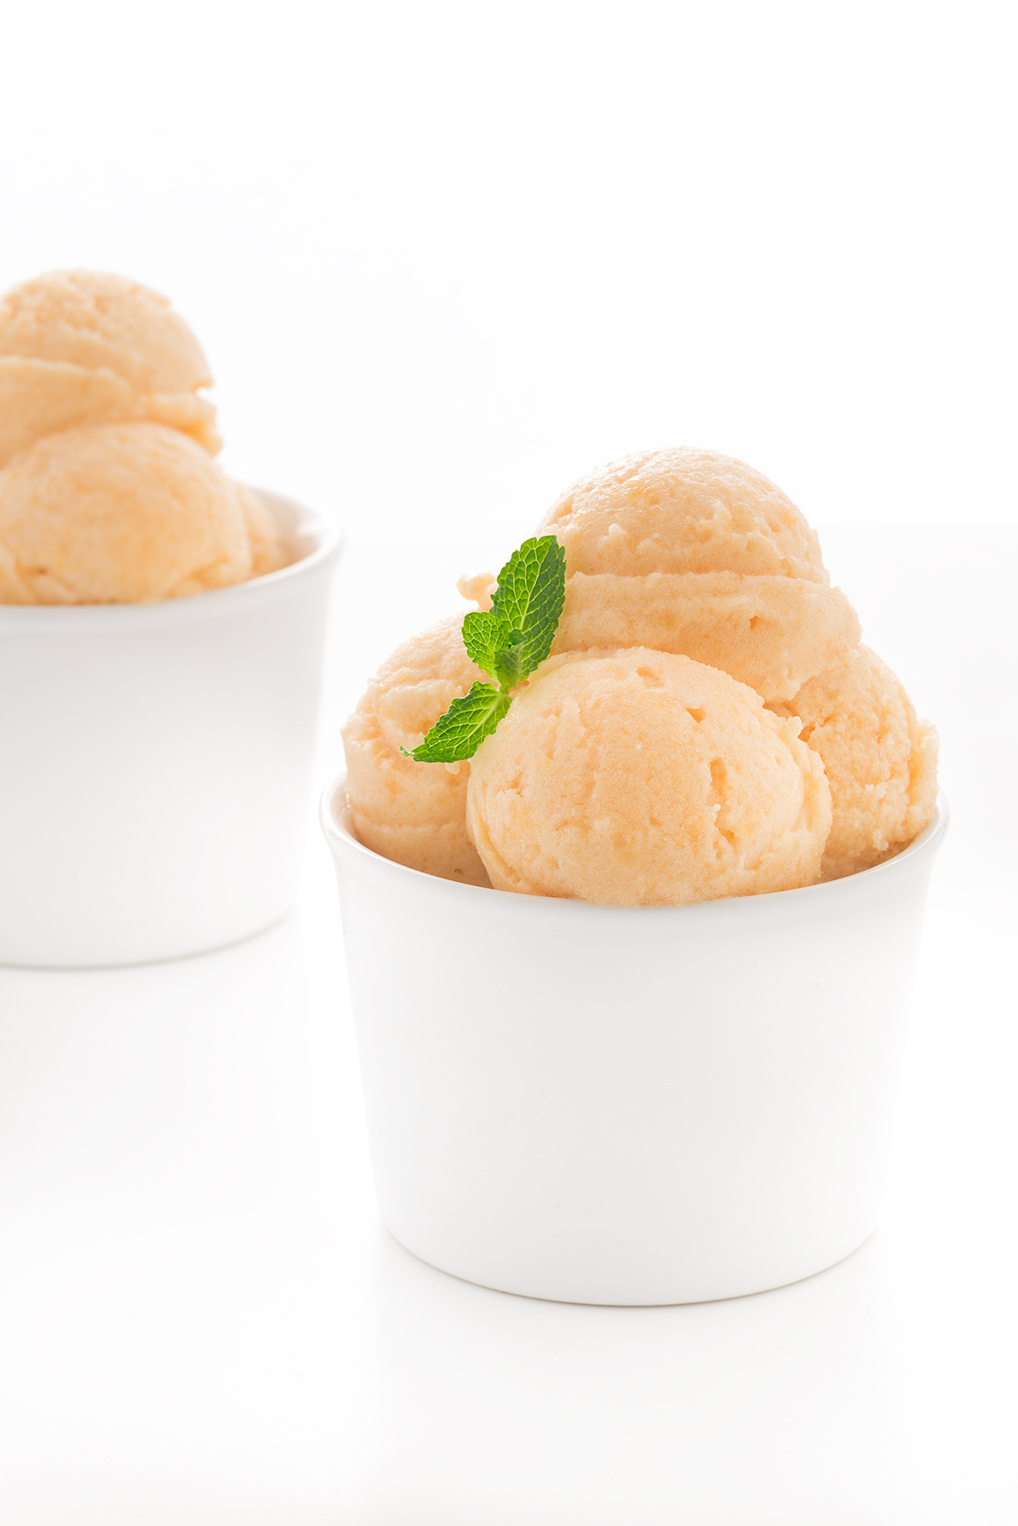 sorbetto al melone senza zucchero - vegan melon sorbet sugarfree recipe